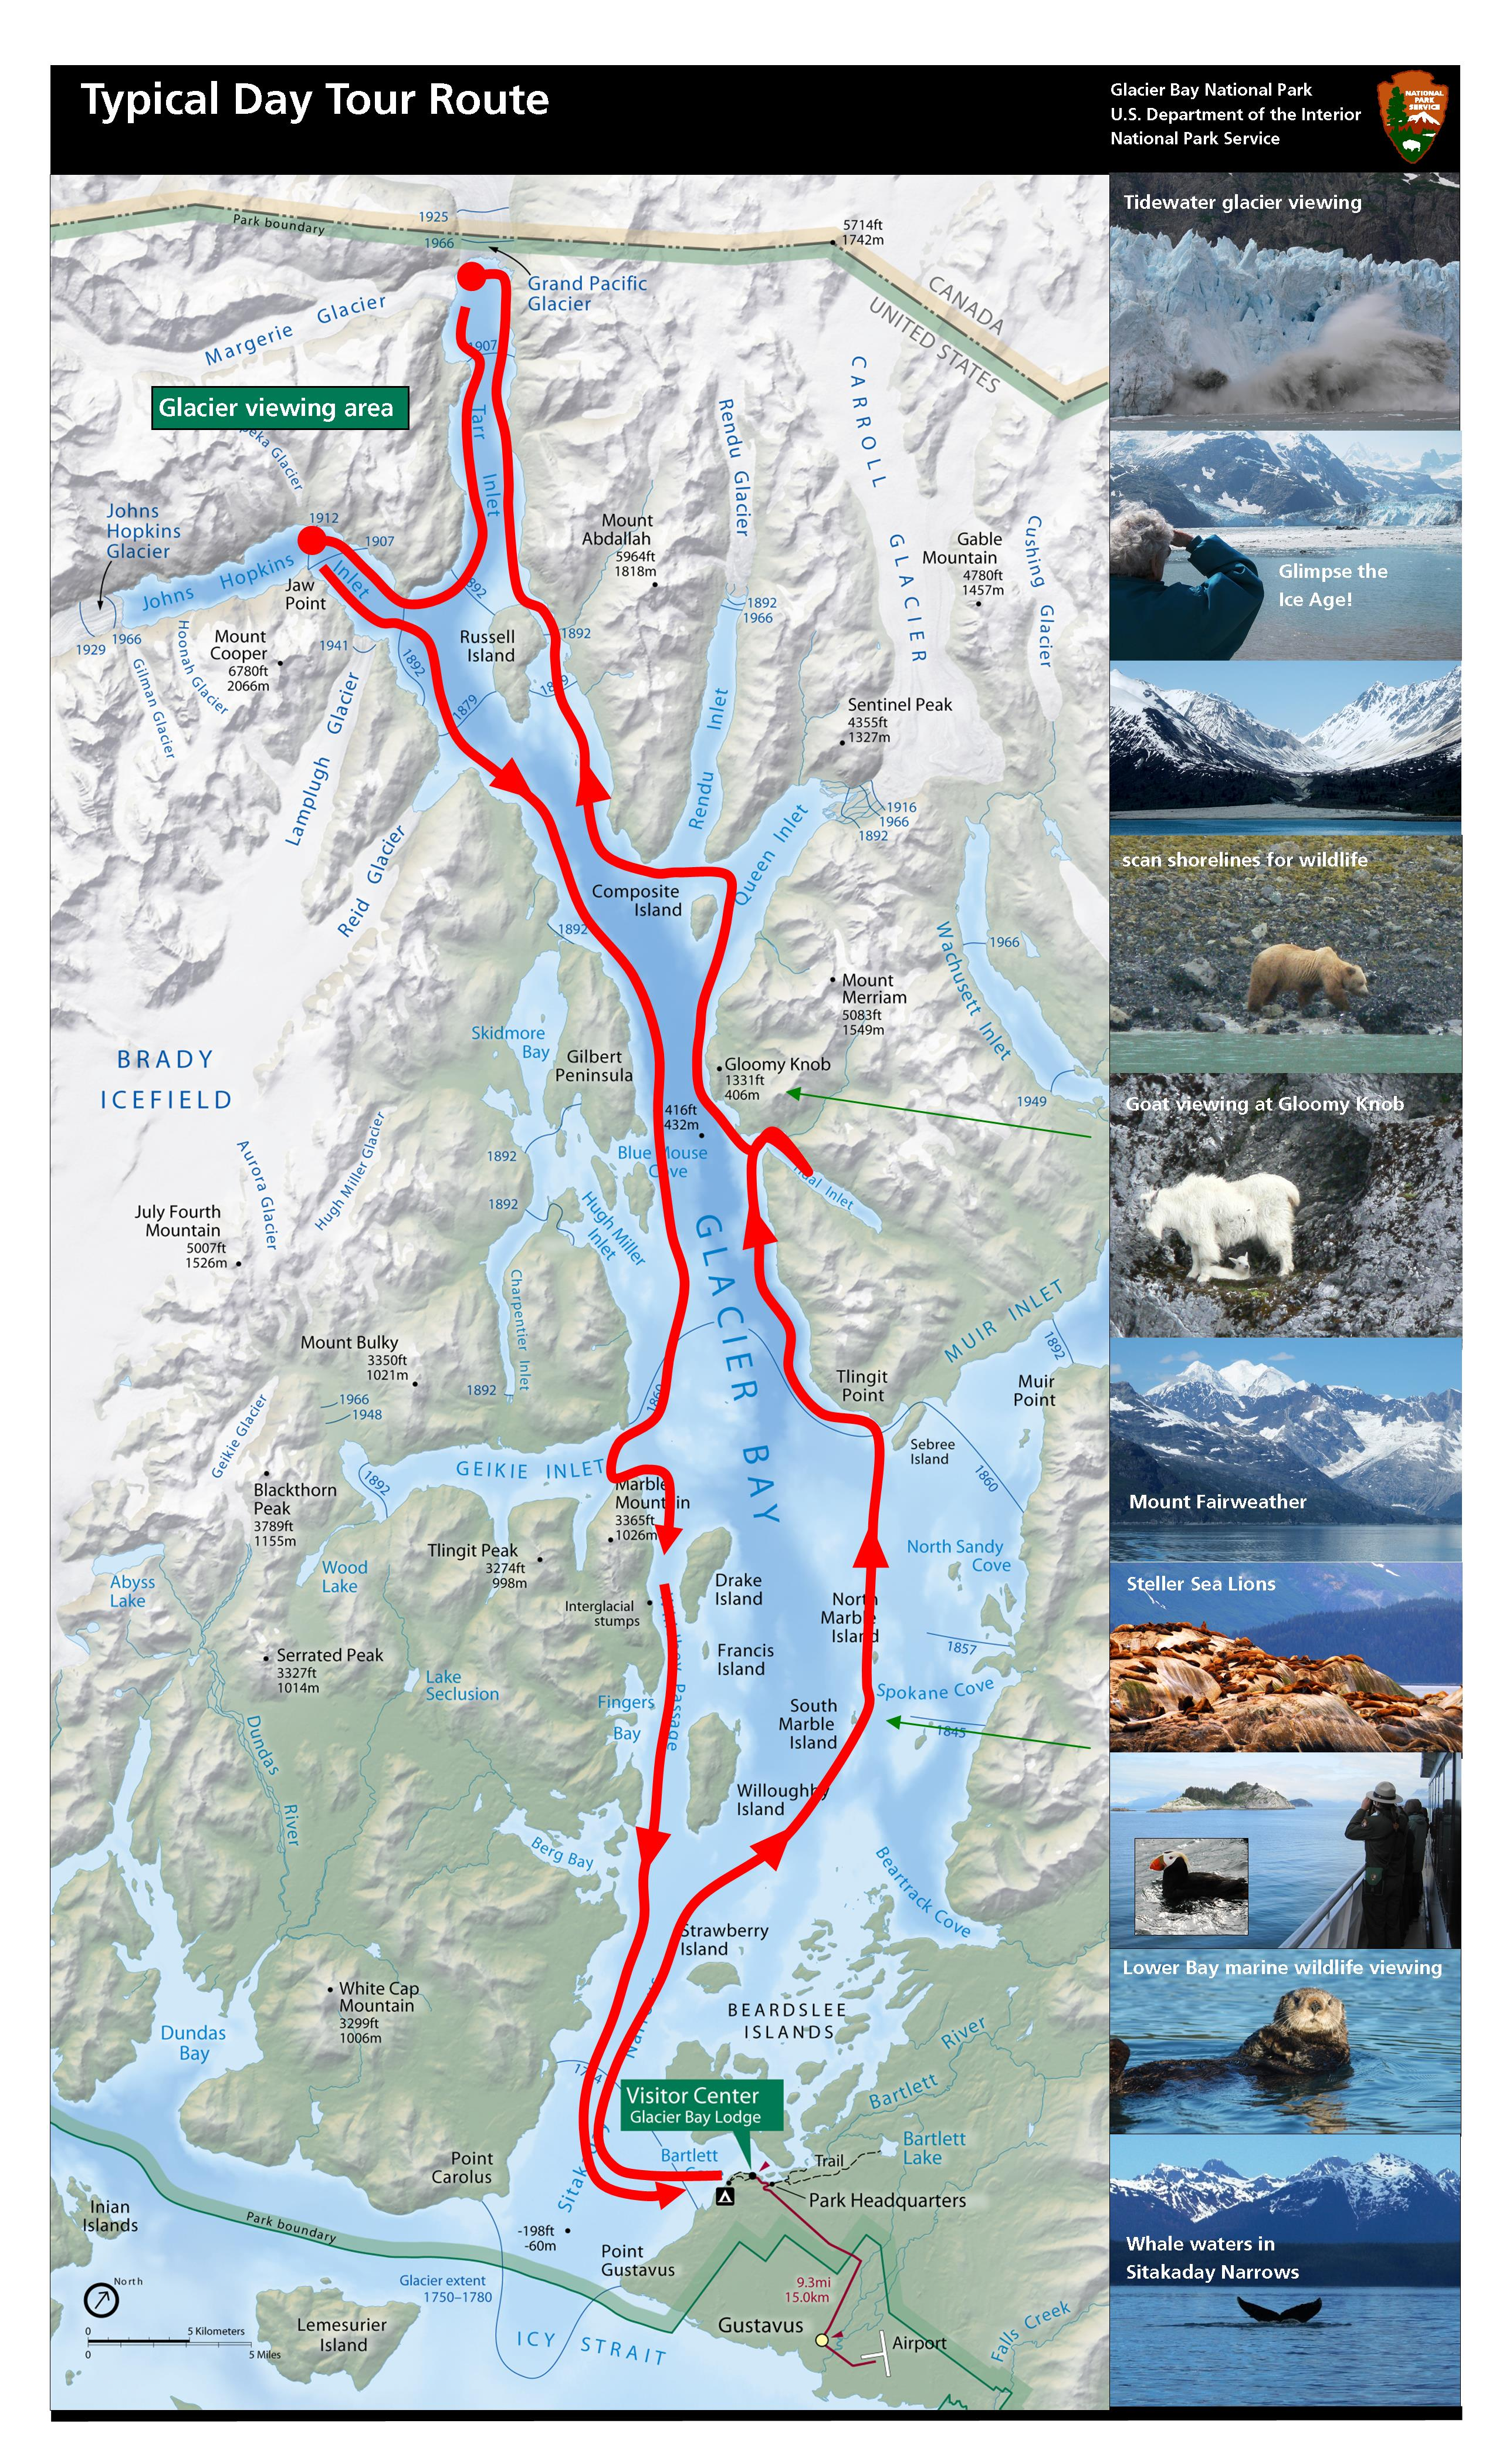 Typical tour boat route in Glacier Bay